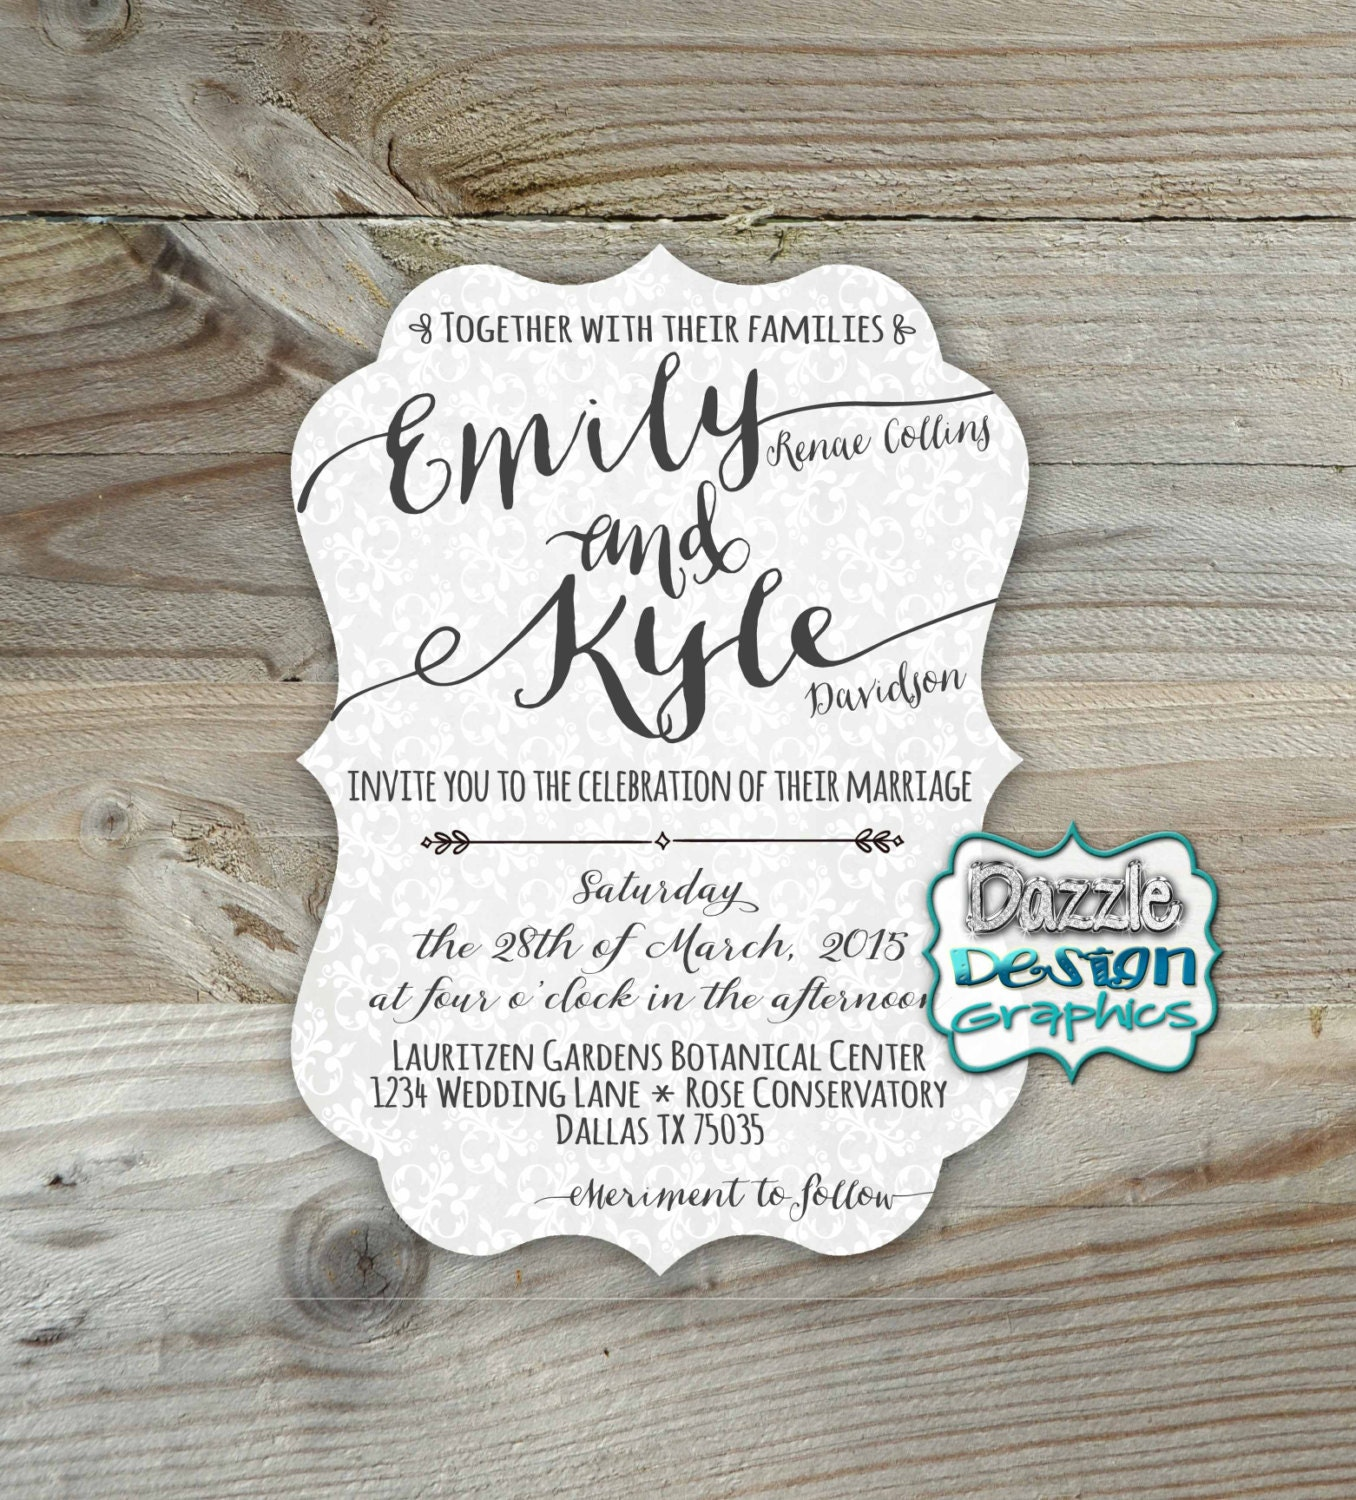 Best Fonts For Wedding Invitations: Casual Wedding Invitation Elegant Fonts Die Cut